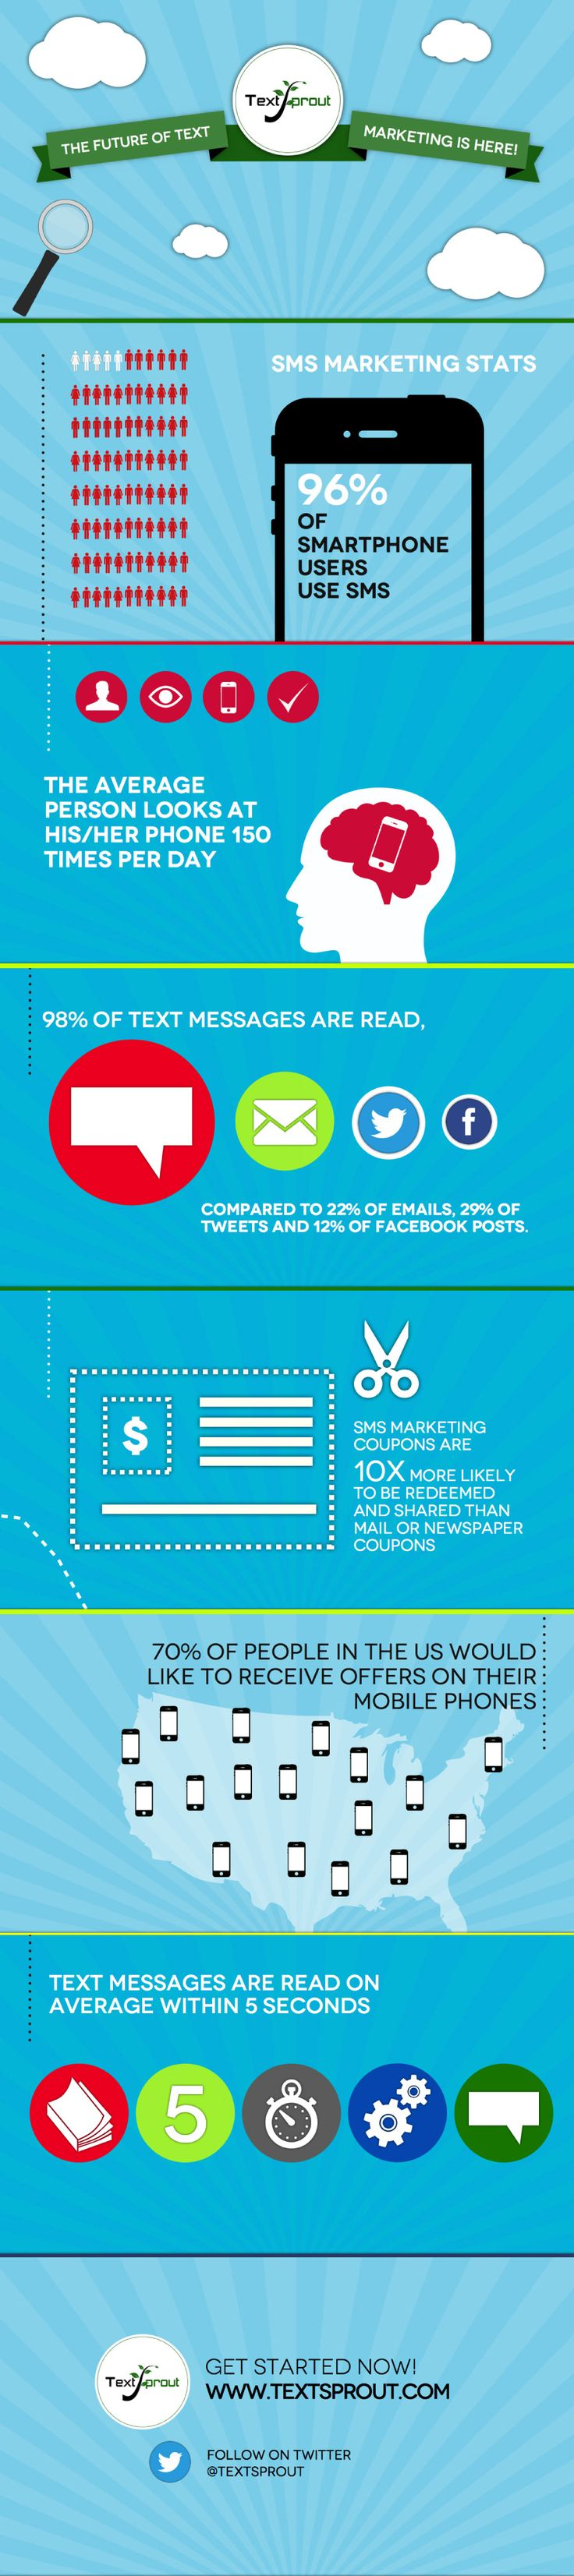 SMS Marketing Fun Facts and Stats | Visit our new infographic gallery at visualoop.com/